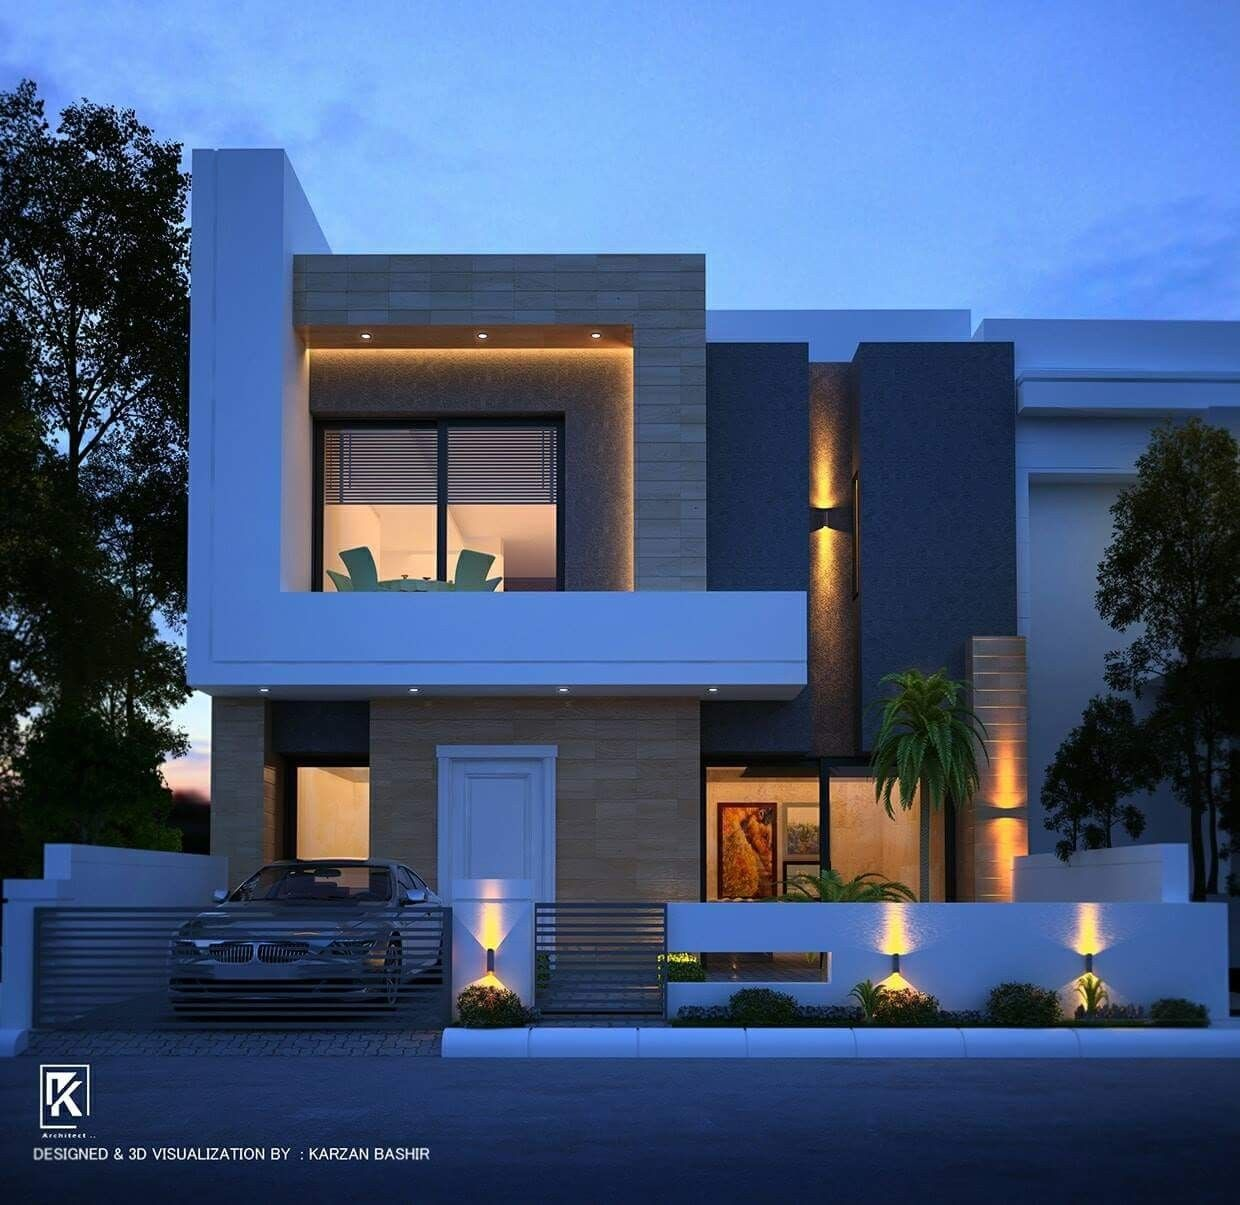 Houzz Home Design Ideas: Pin By Dwarkadhish&Co. On Elevation-2